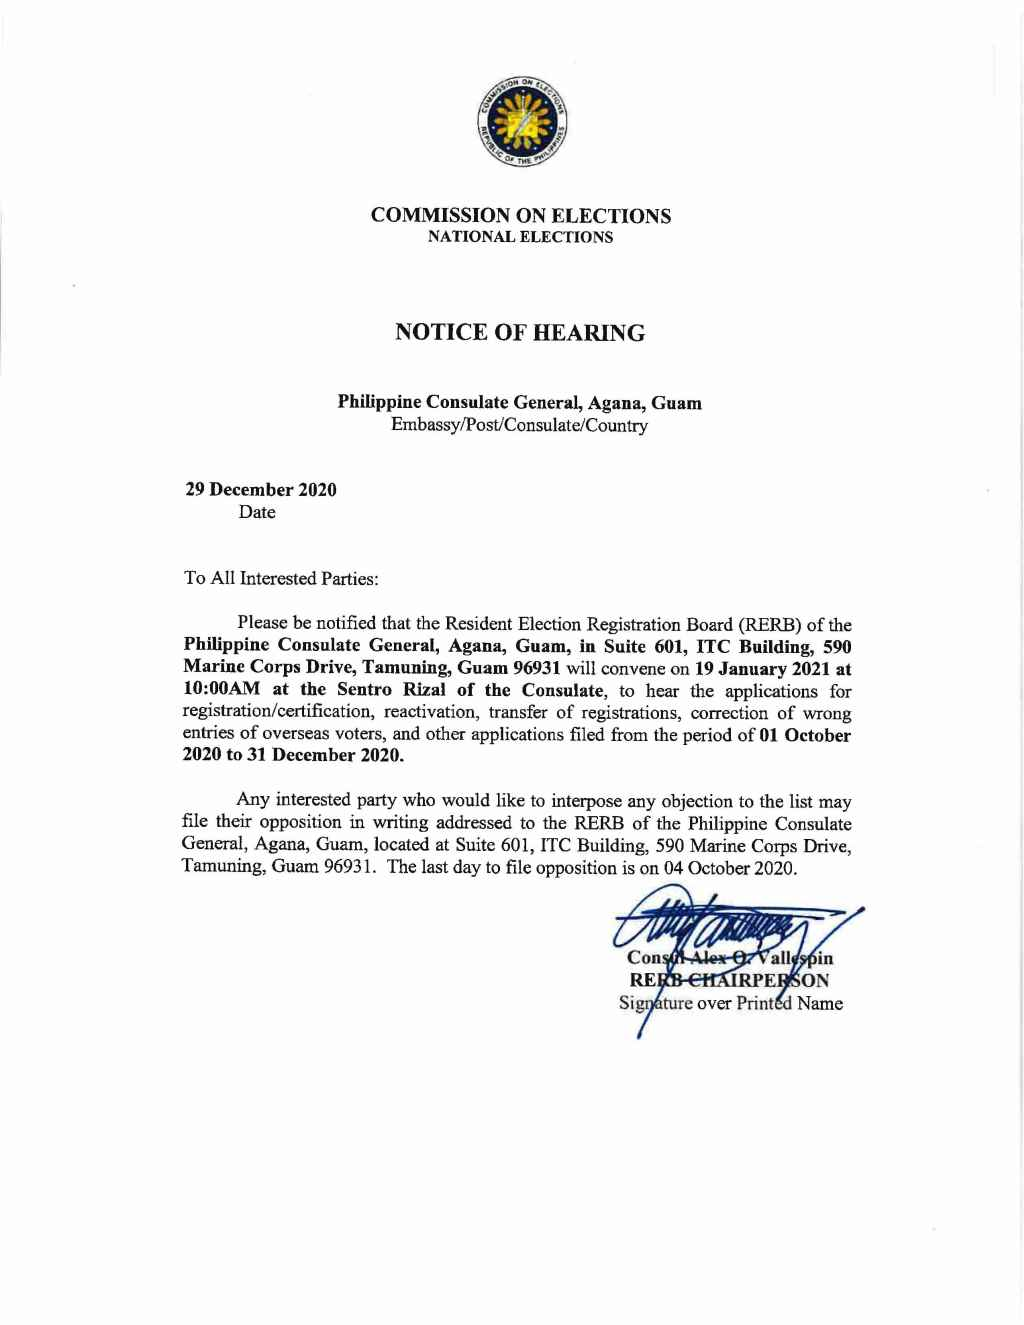 Notice of Hearing of the Resident Election Registration Board (RERB) on 19 January 2021